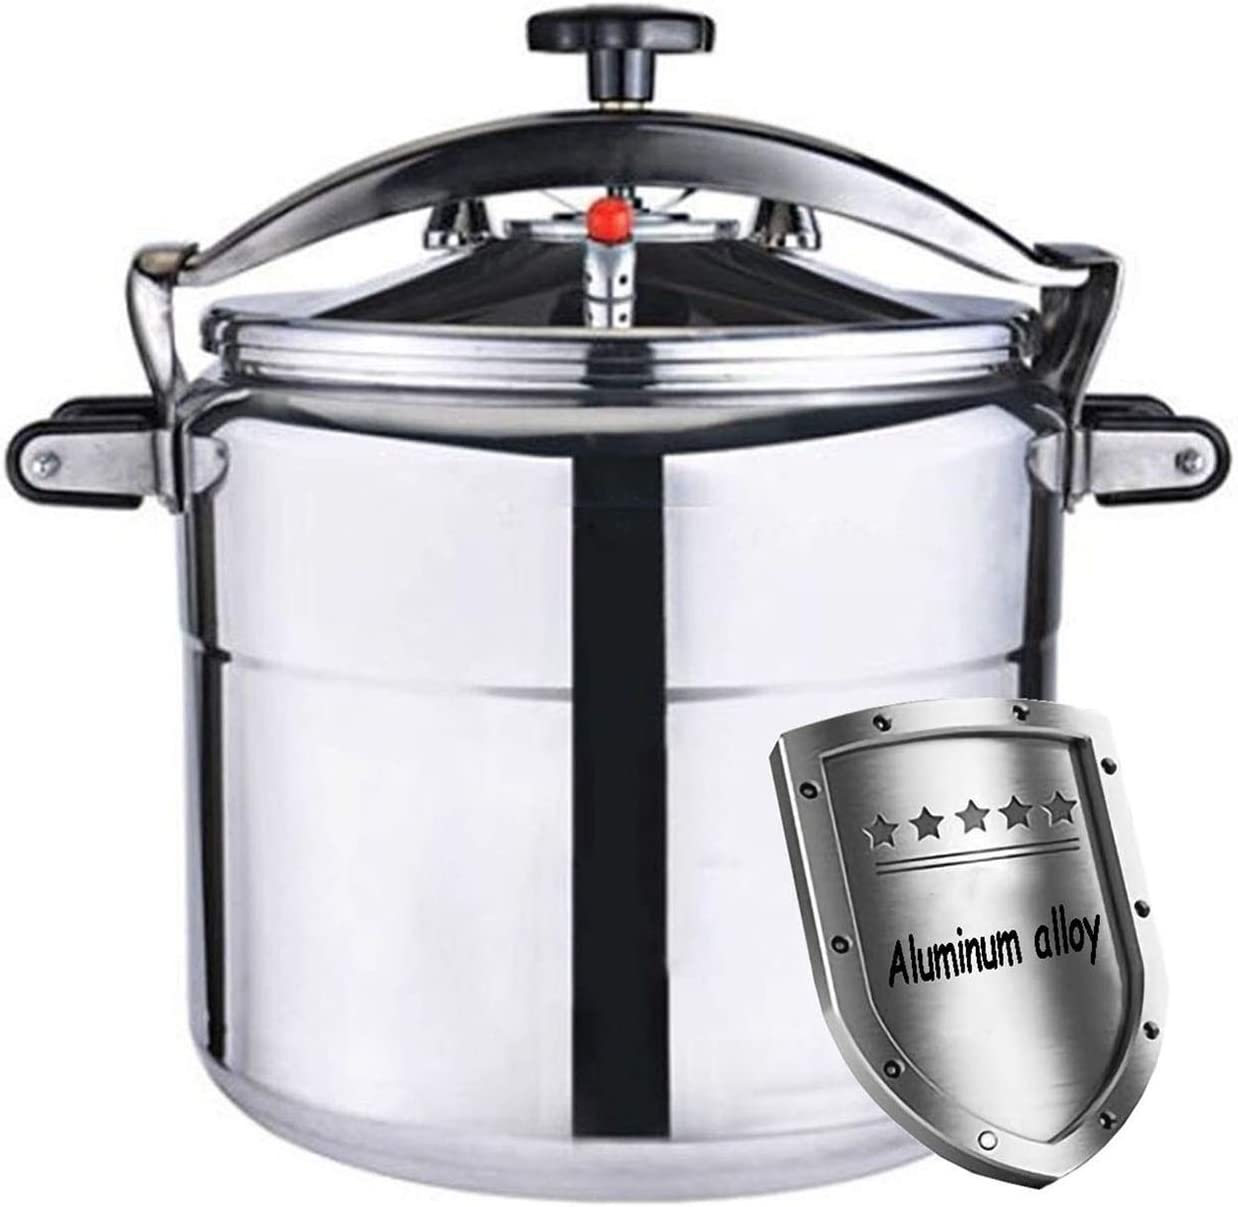 3-80L Large capacity pressure cooker, commercial soup pot household steame hotel pot ordinary kitchen utensils, can be used for kitchen, restaurant and hotel supplies (Color : Silver, Size : 22L)